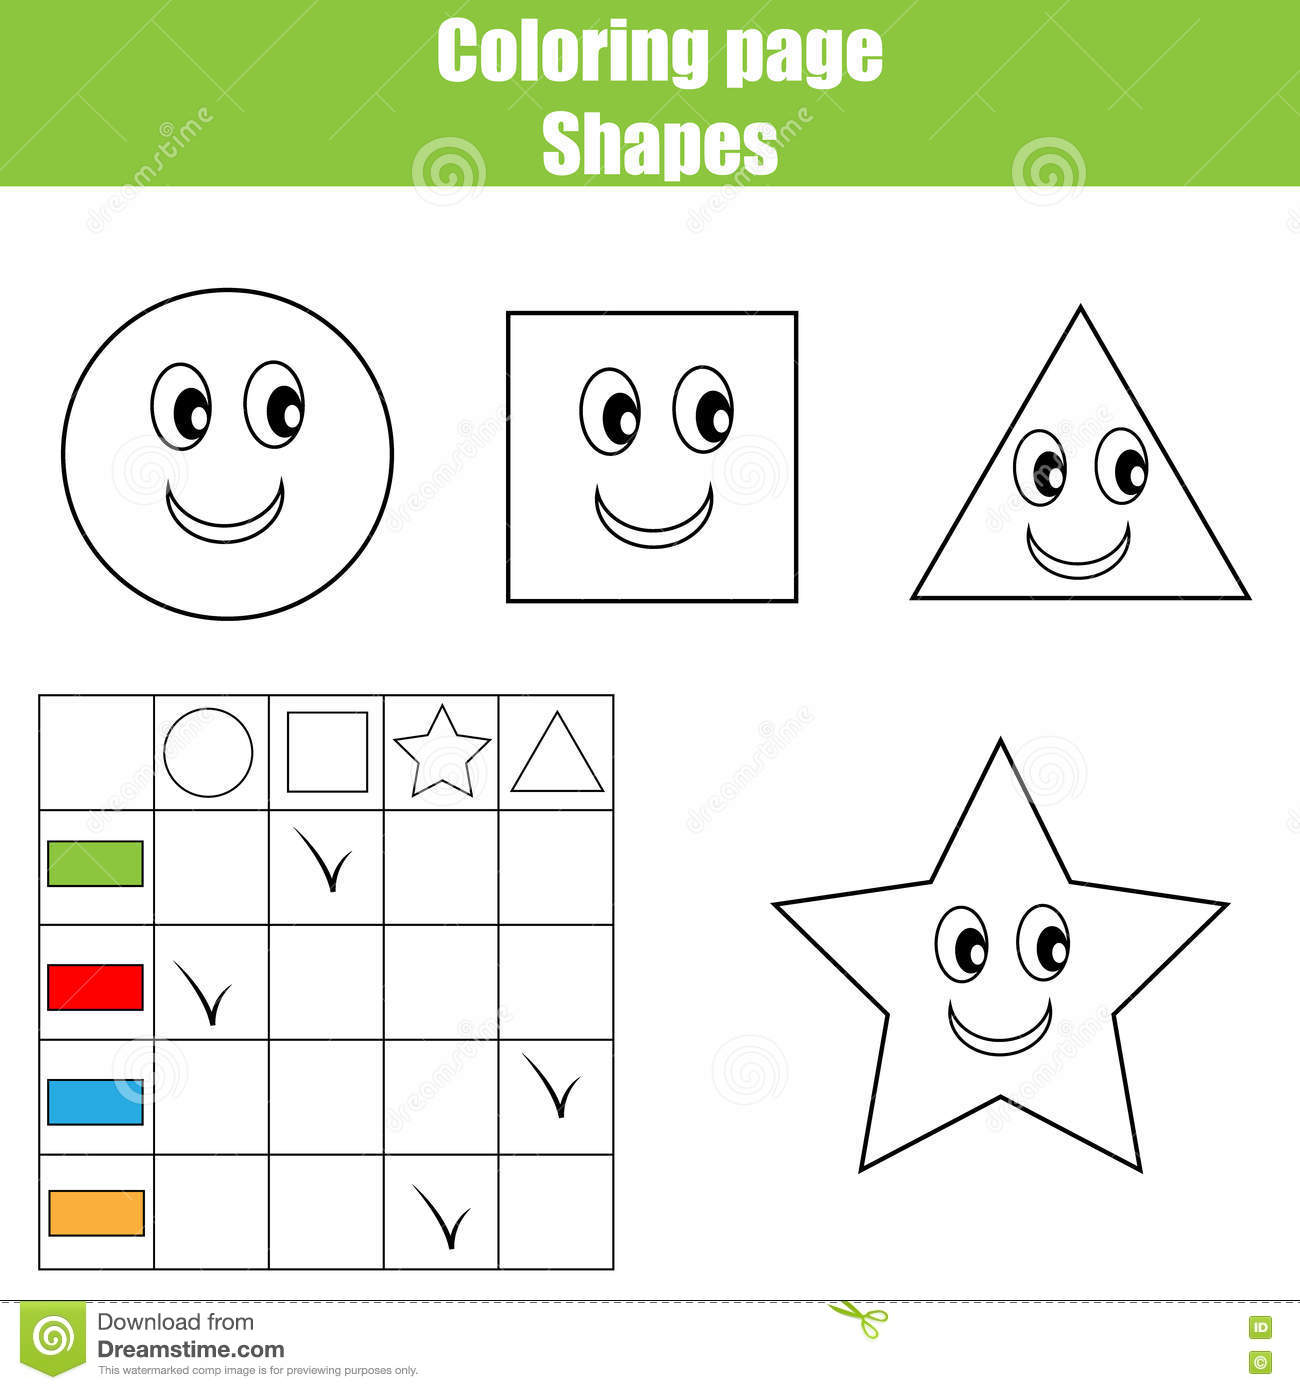 Colors for learning free printable learning colors coloring pages are - Activity Children Coloring Colors Educational Kids Learning Preschool Printable